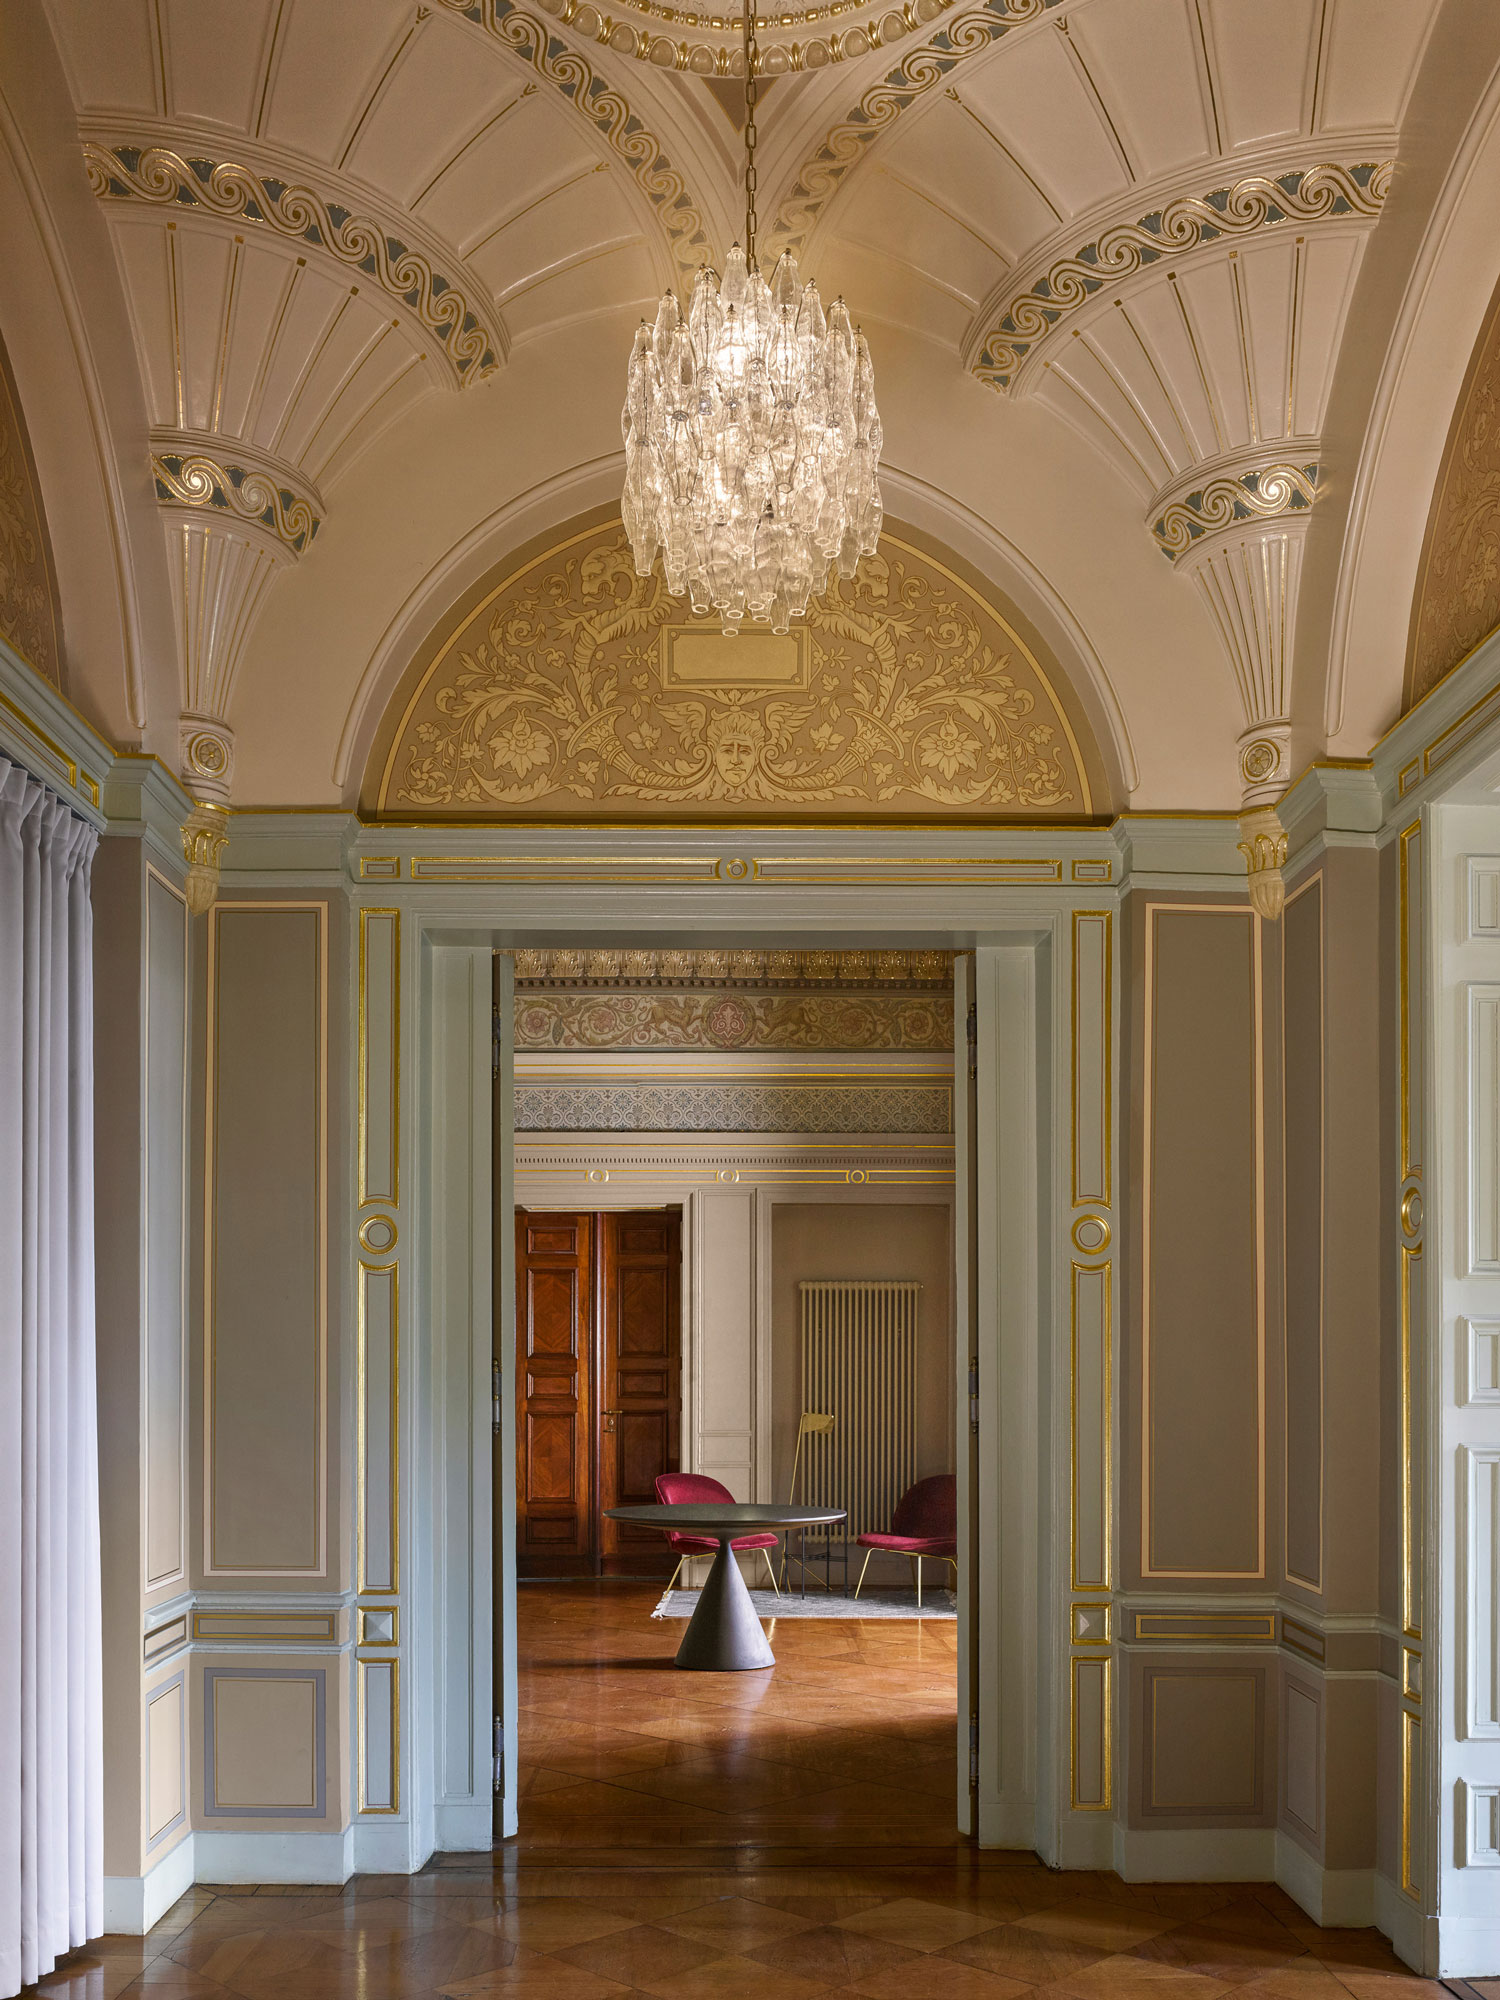 Grand C19th Palais in Berlin Reimagined as an Office by David Kohn Architects.